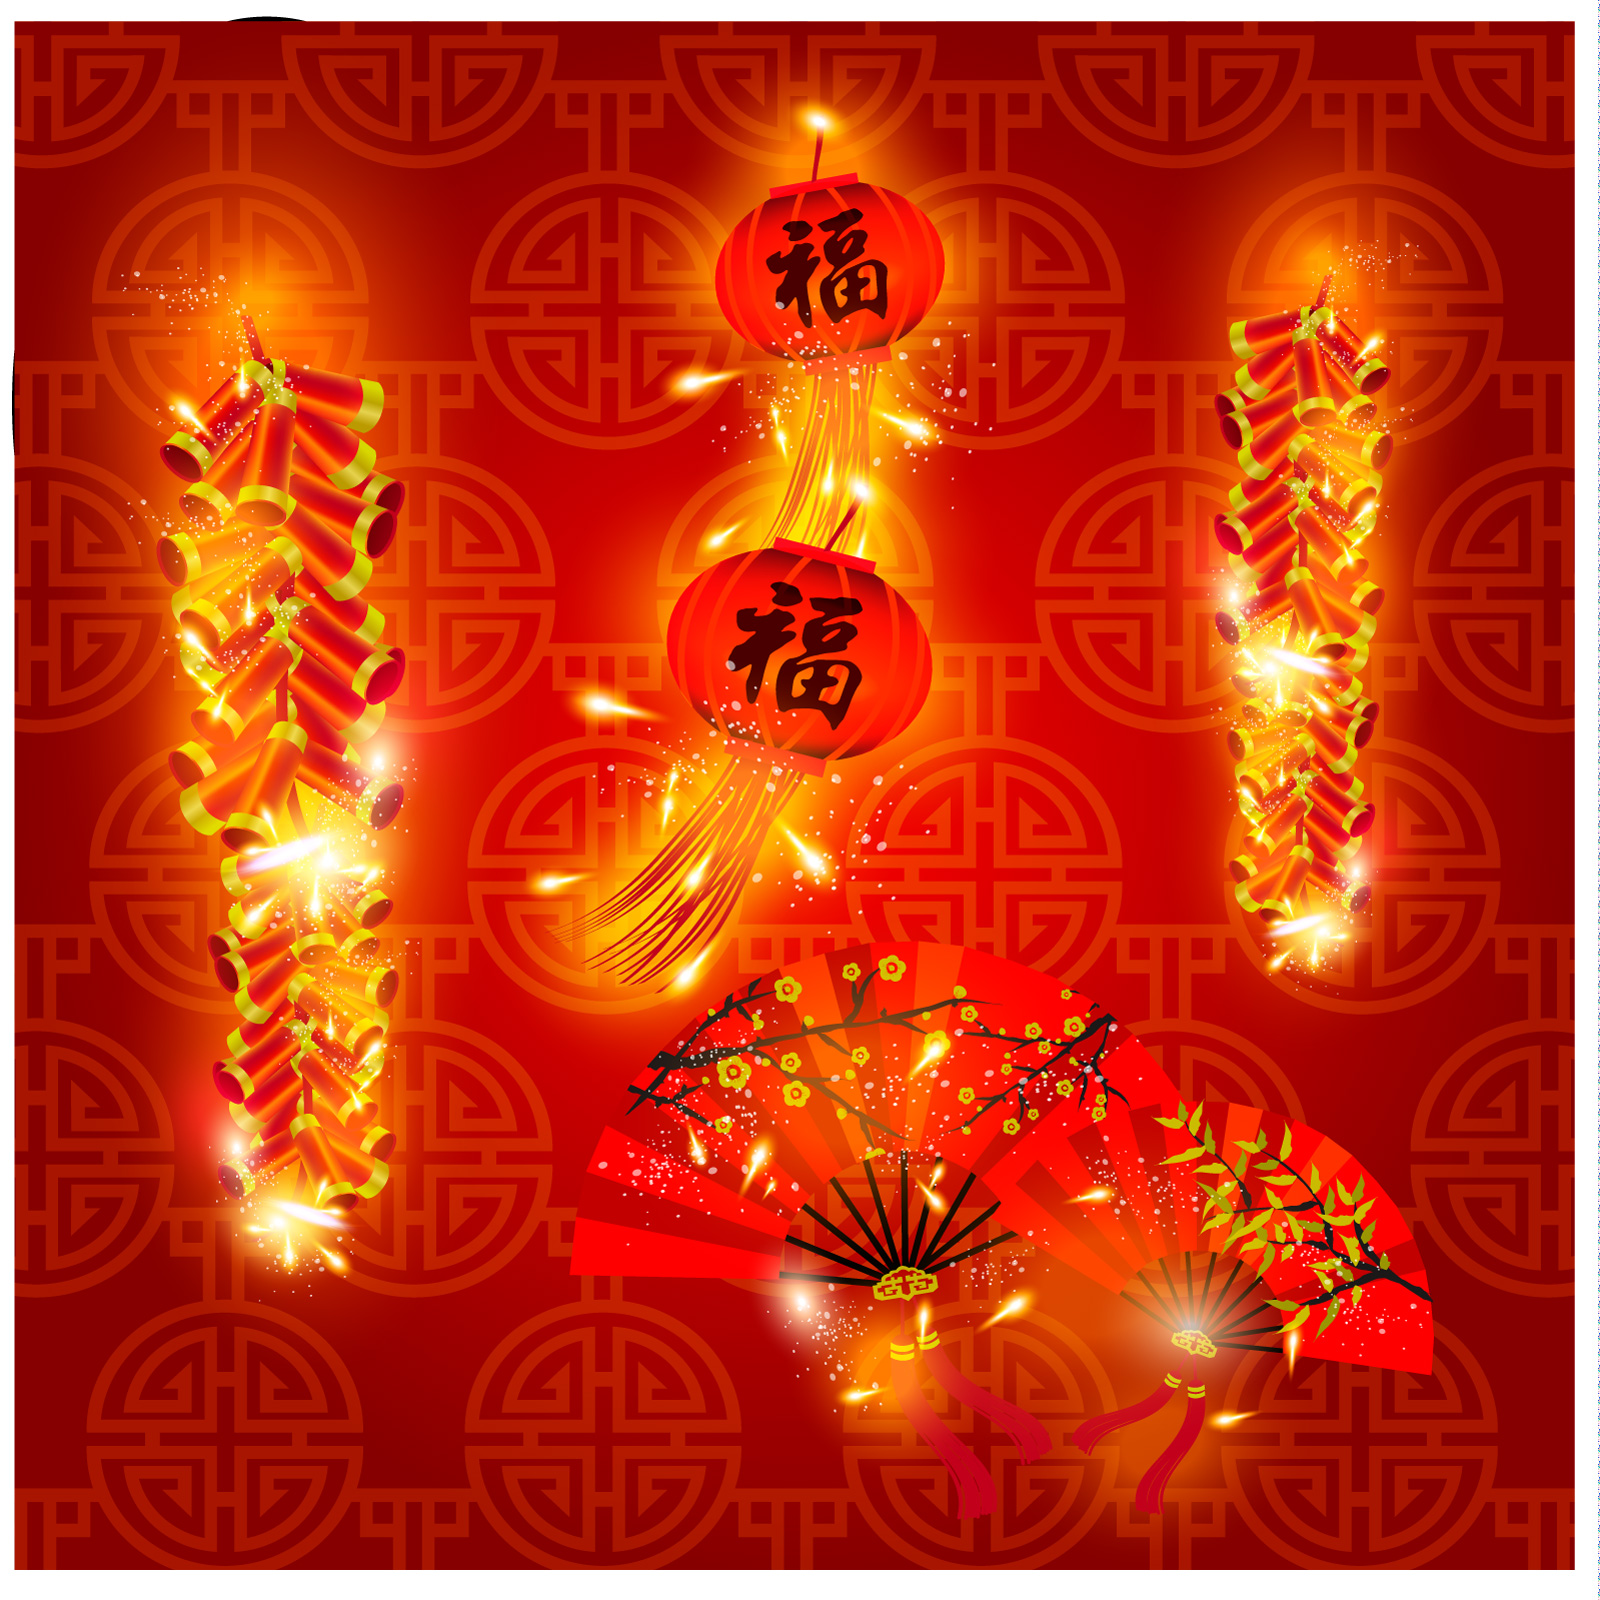 chinesefontdesign.com 2017 04 11 18 47 49 Chinese red   holiday festival decorations   firecrackers   fans China Illustrations Vectors AI ESP firecrackers ai firecrackers Chinese fans ai Chinese fans